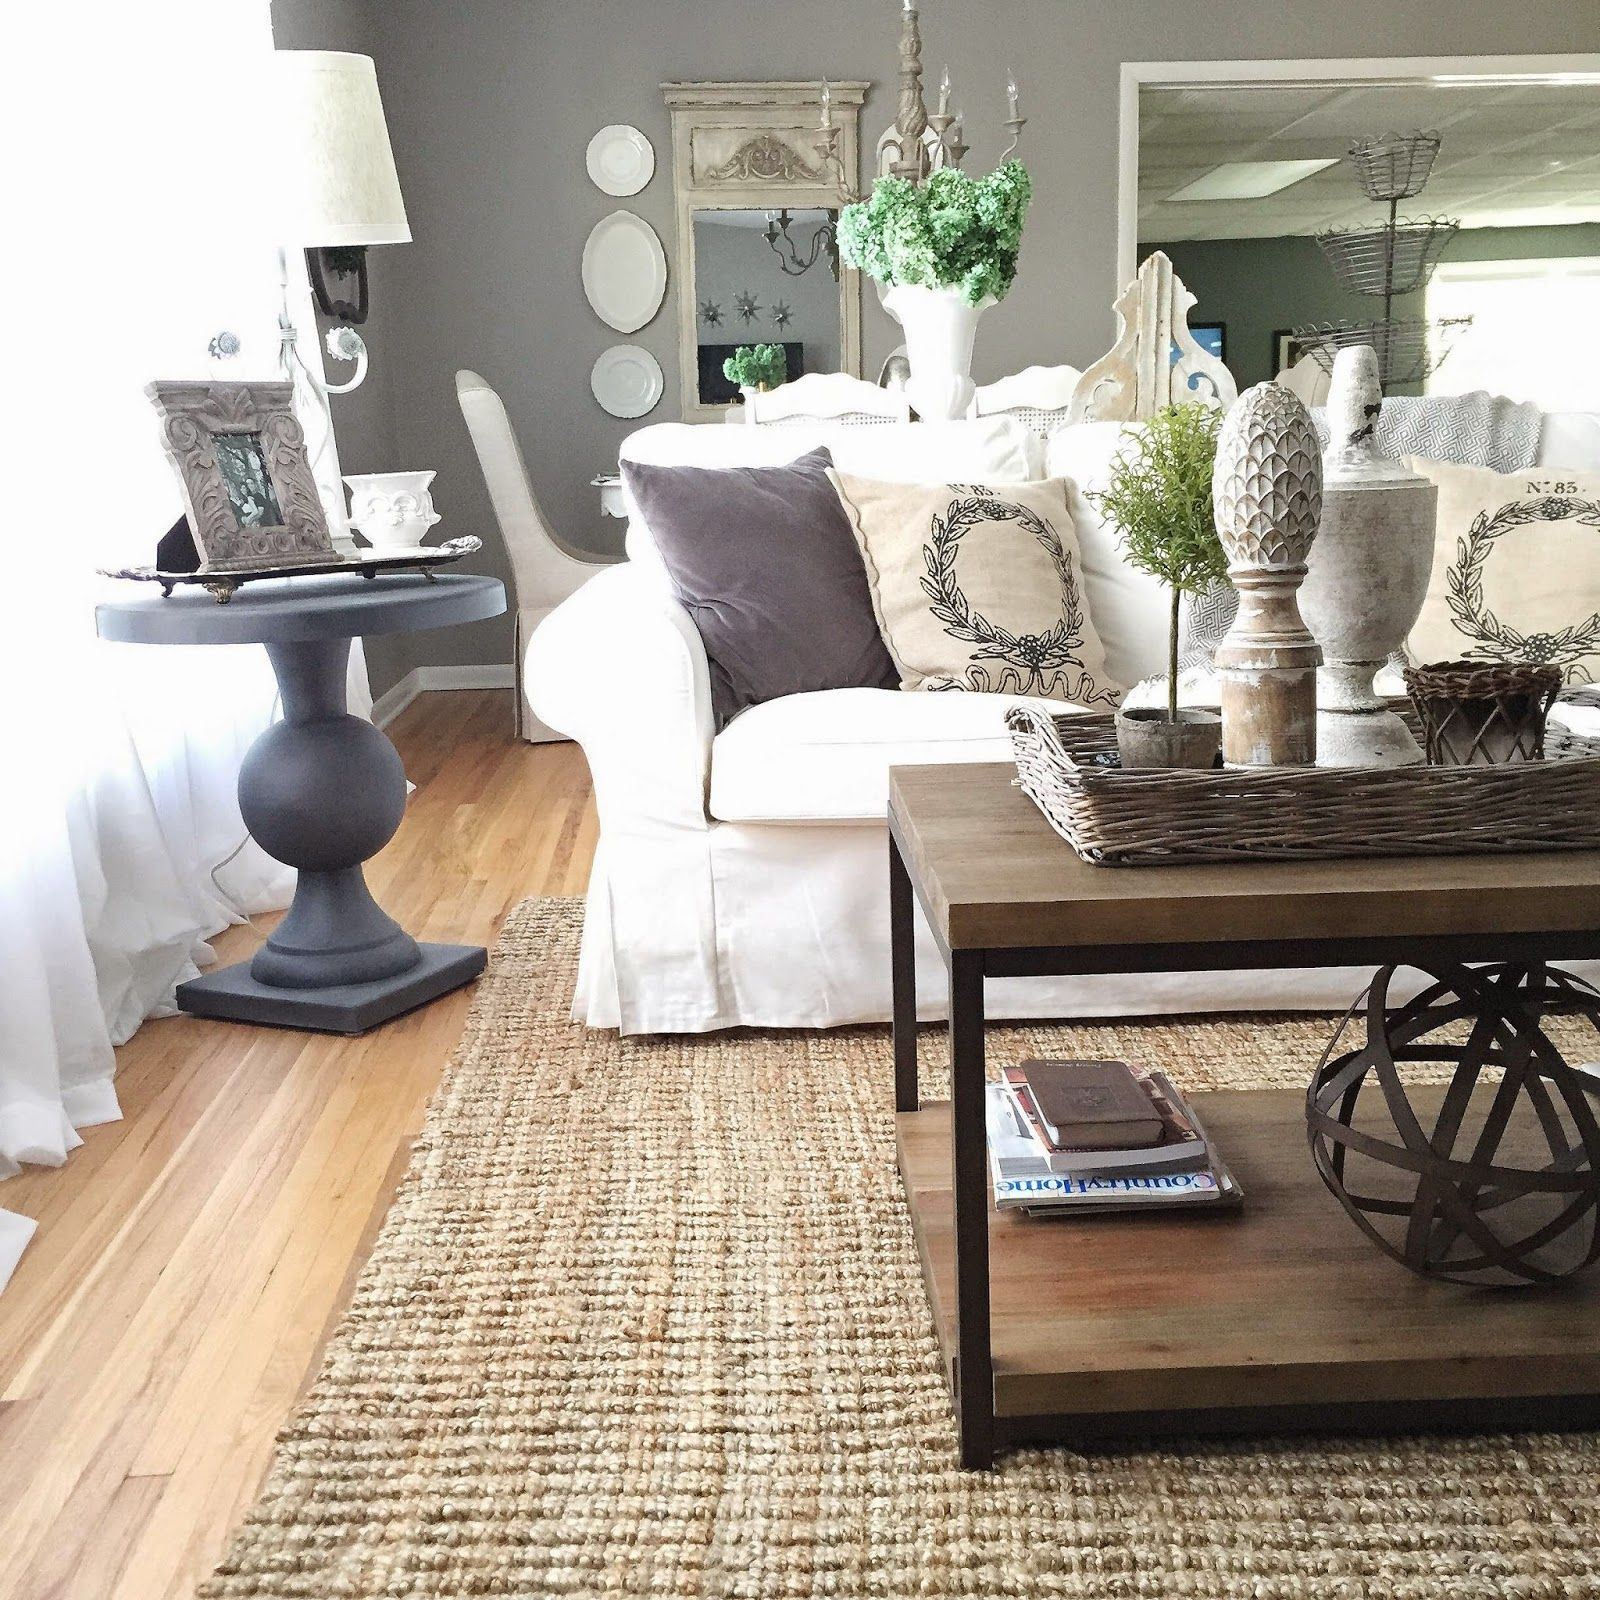 French Country Joanna Gaines Living Room Simple Dining Room Decorating Ideas Joanna Gaines Living